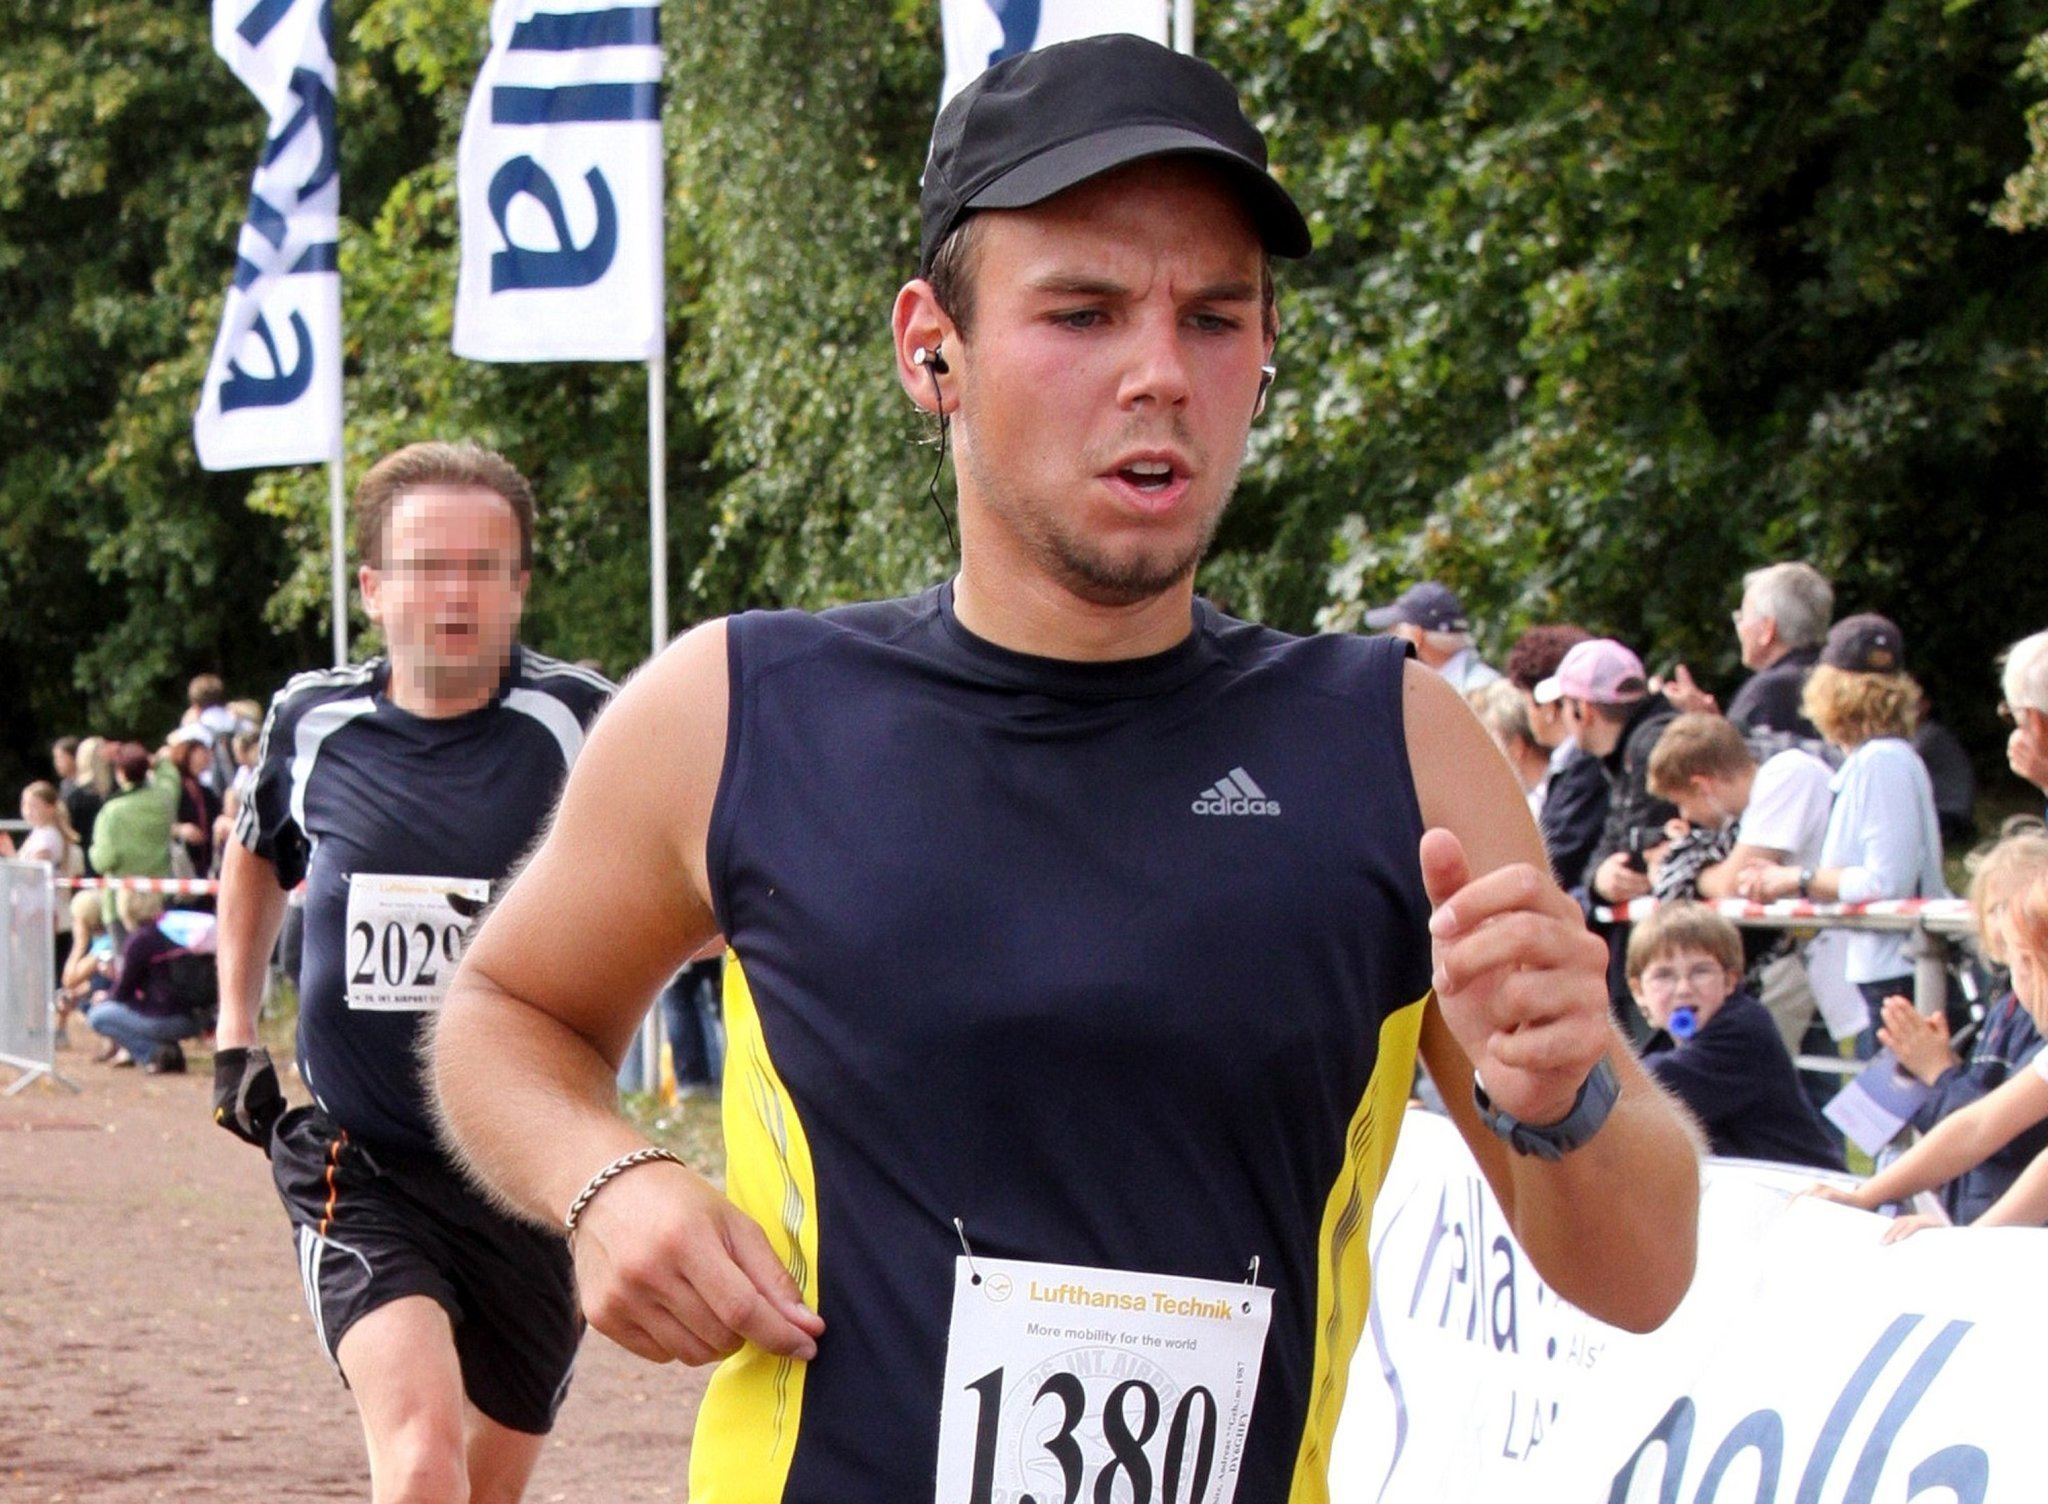 Mental illness made the Germanwings co-pilot a victim along with his passengers